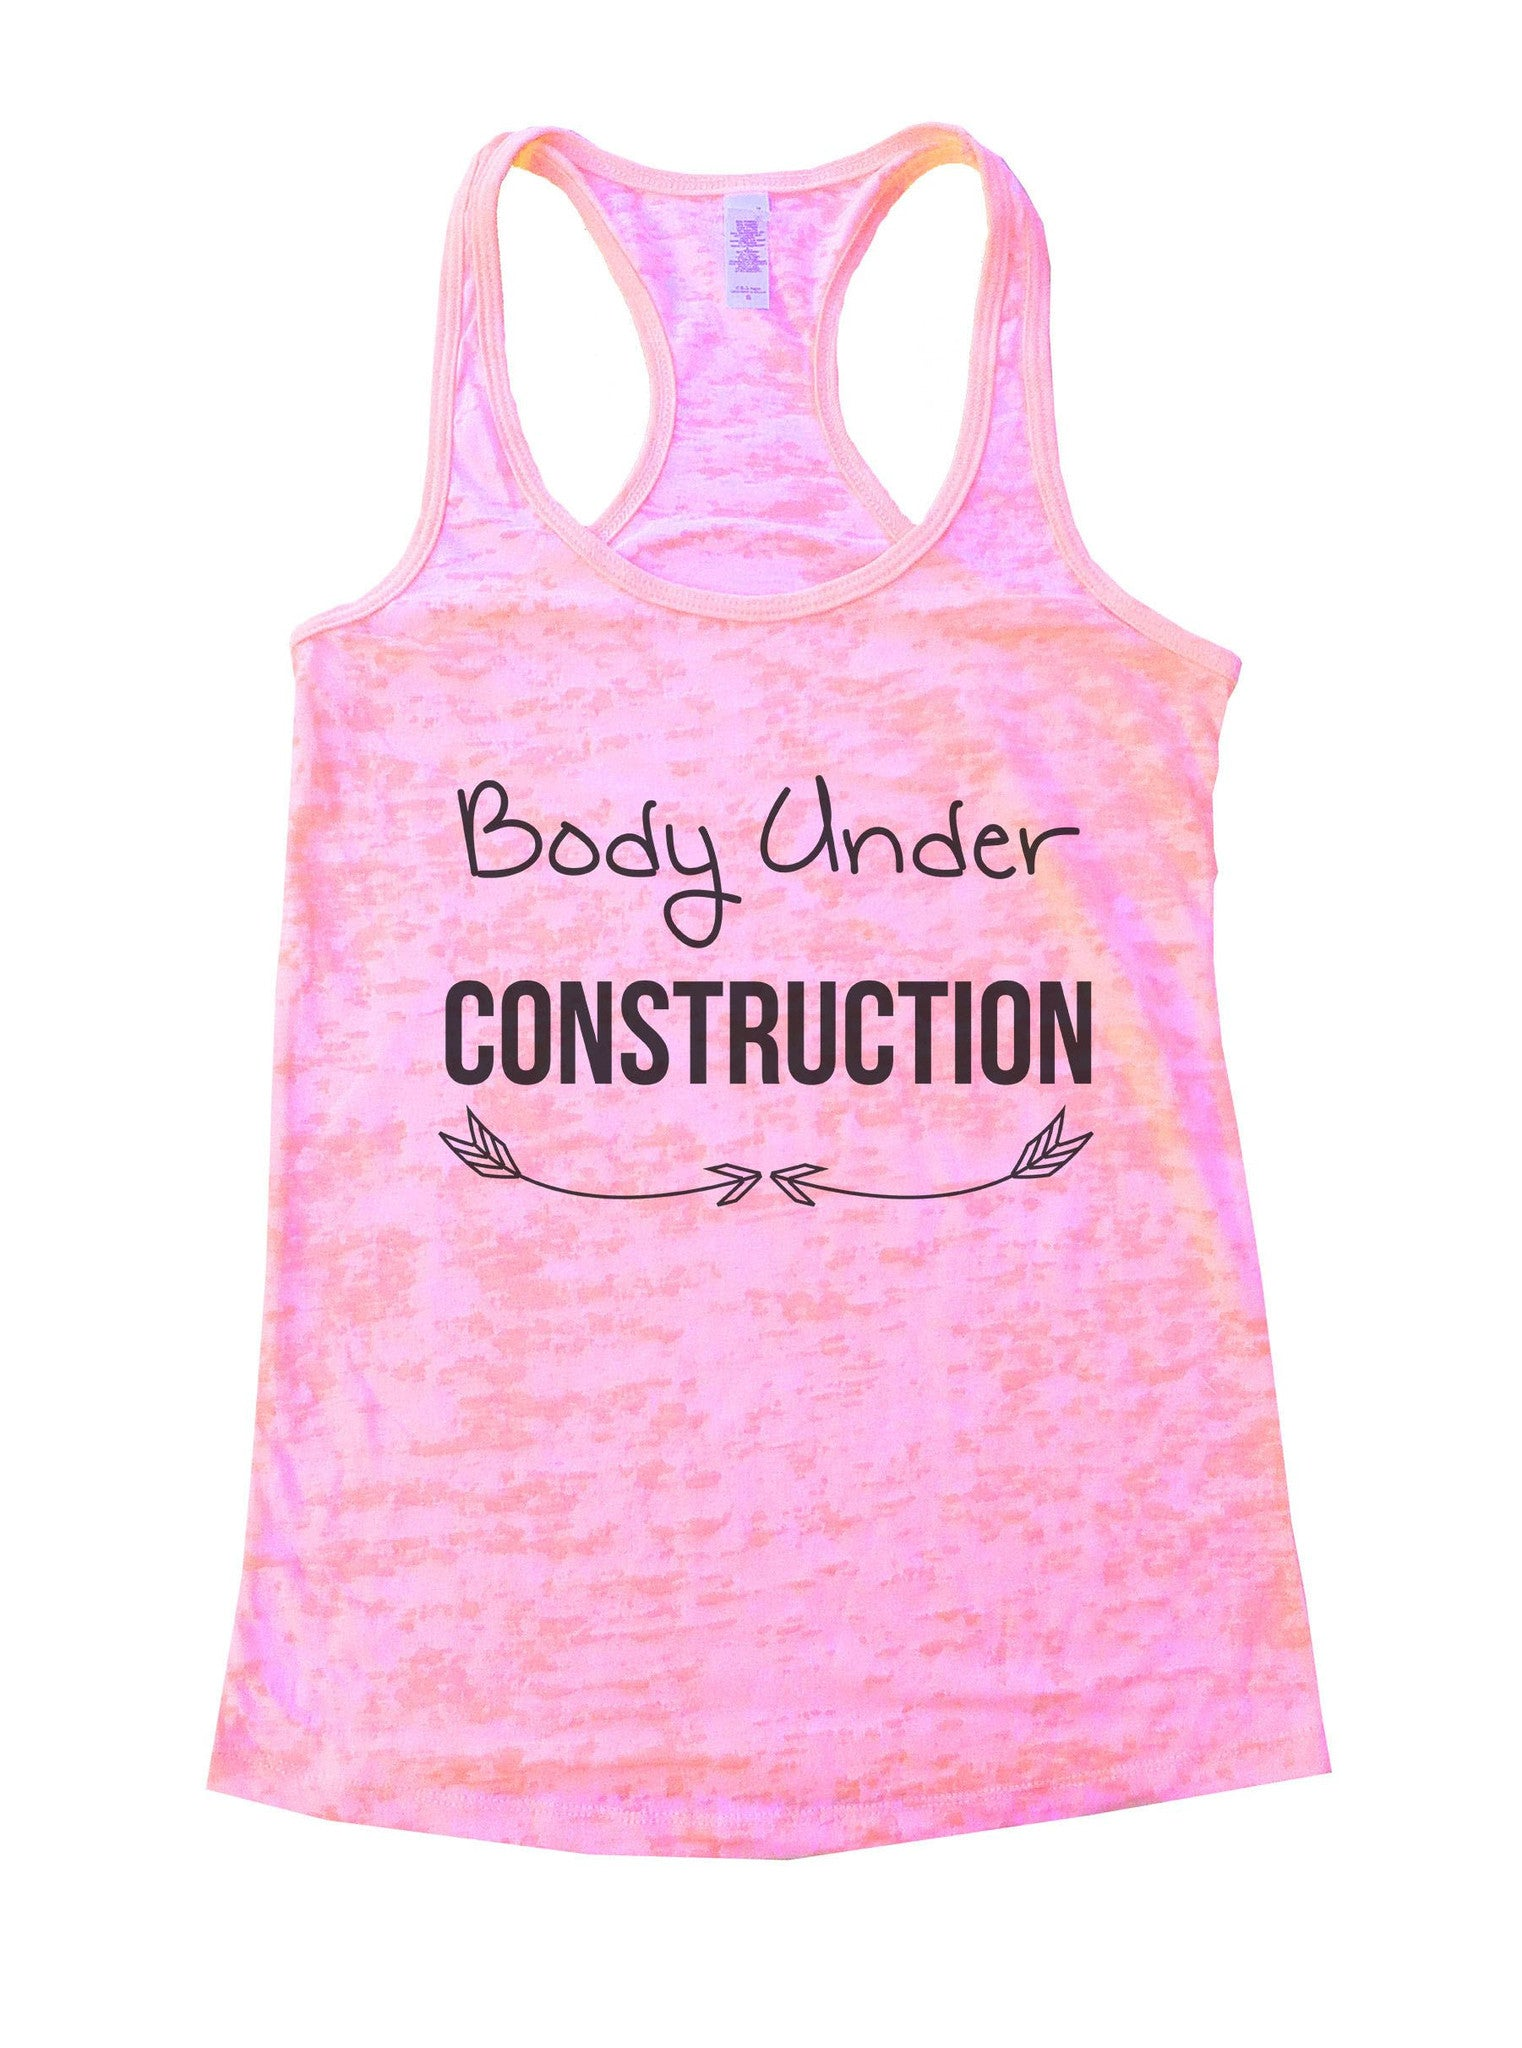 Body Under Construction Burnout Tank Top By BurnoutTankTops.com - 877 - Funny Shirts Tank Tops Burnouts and Triblends  - 1